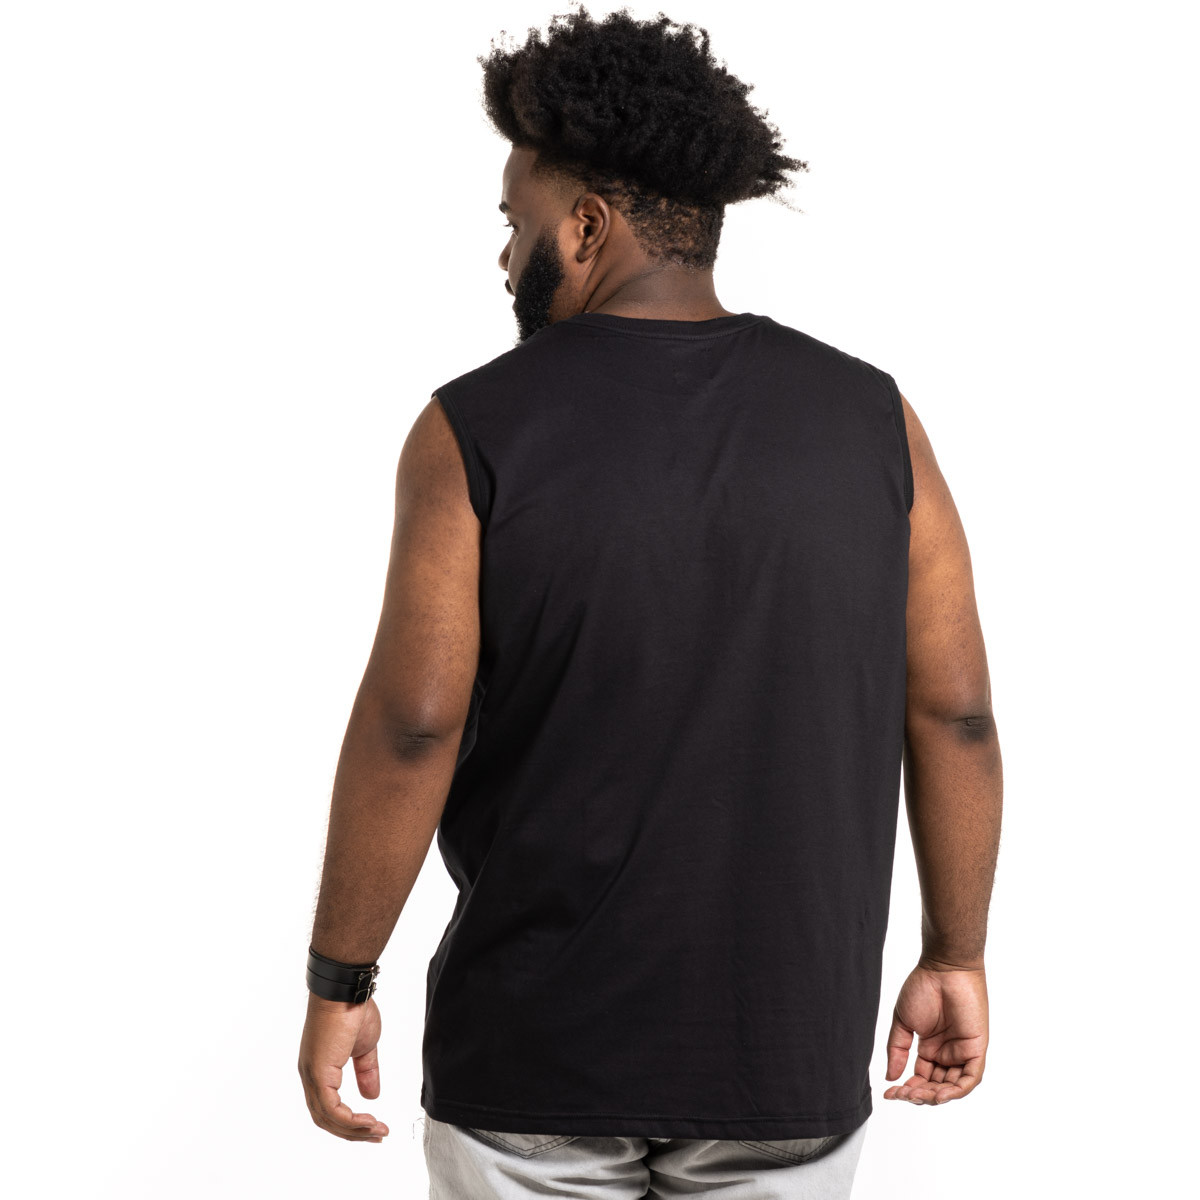 Machão Plus Size Masculina Confort